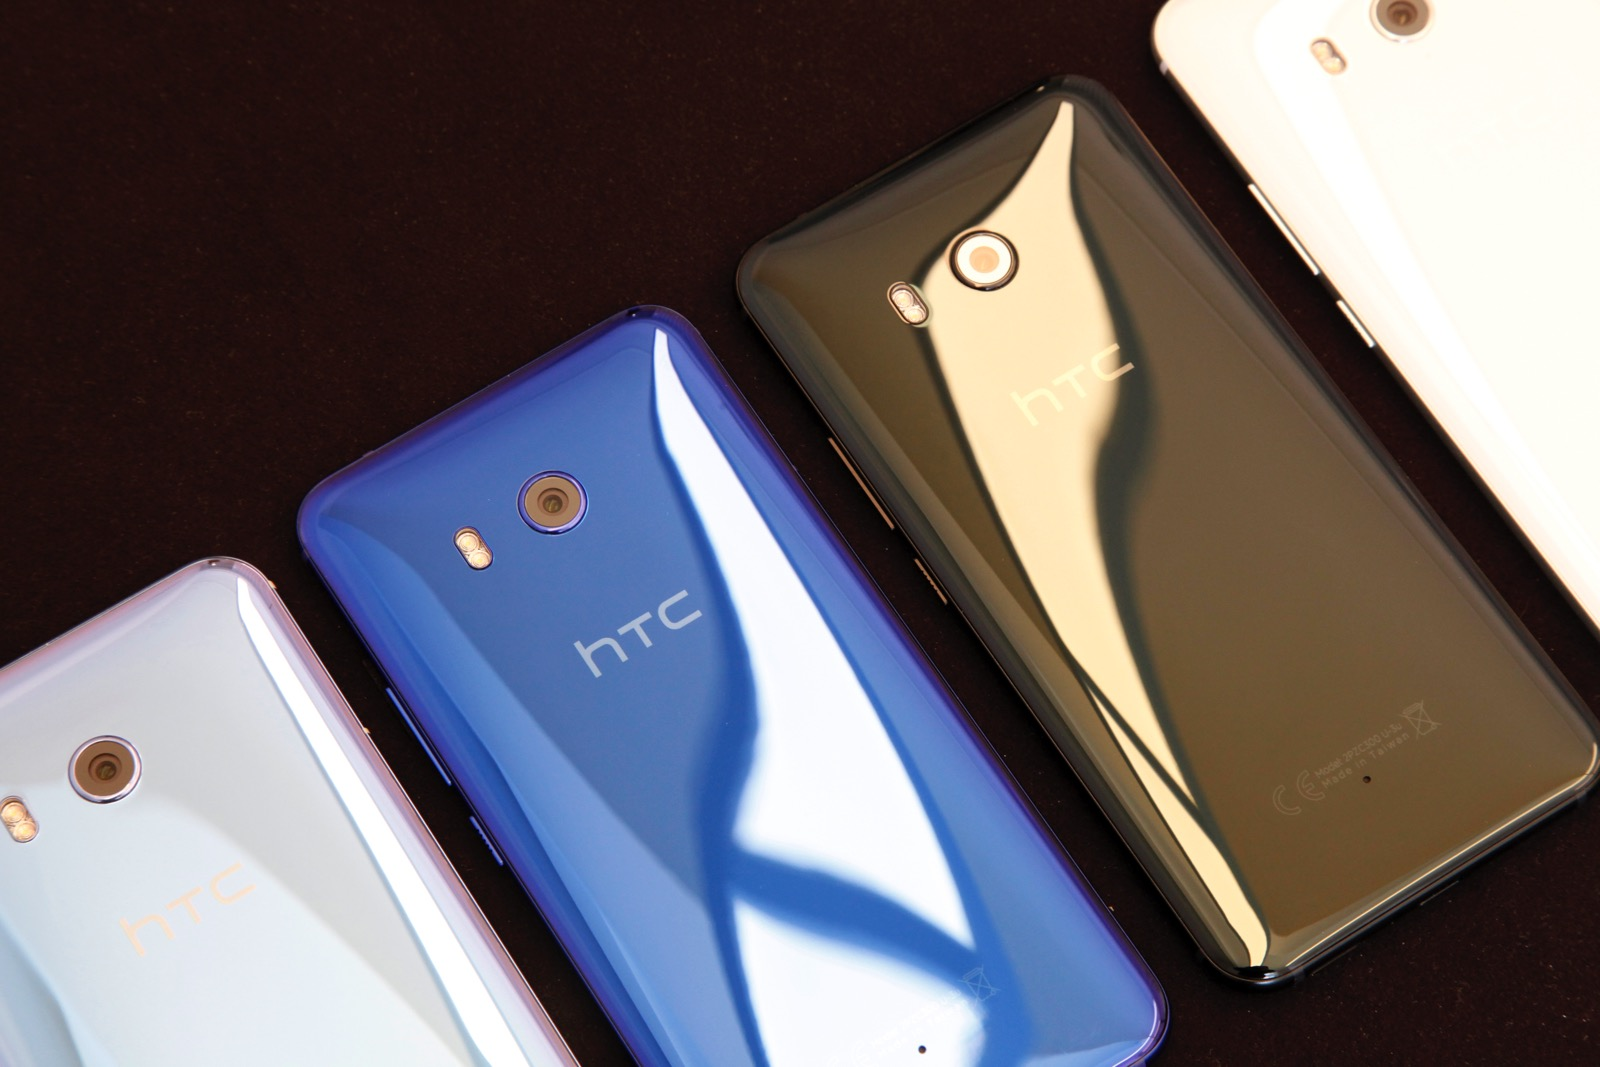 HTC U11 hands-on: Taking on the Galaxy S8 in style – BGR